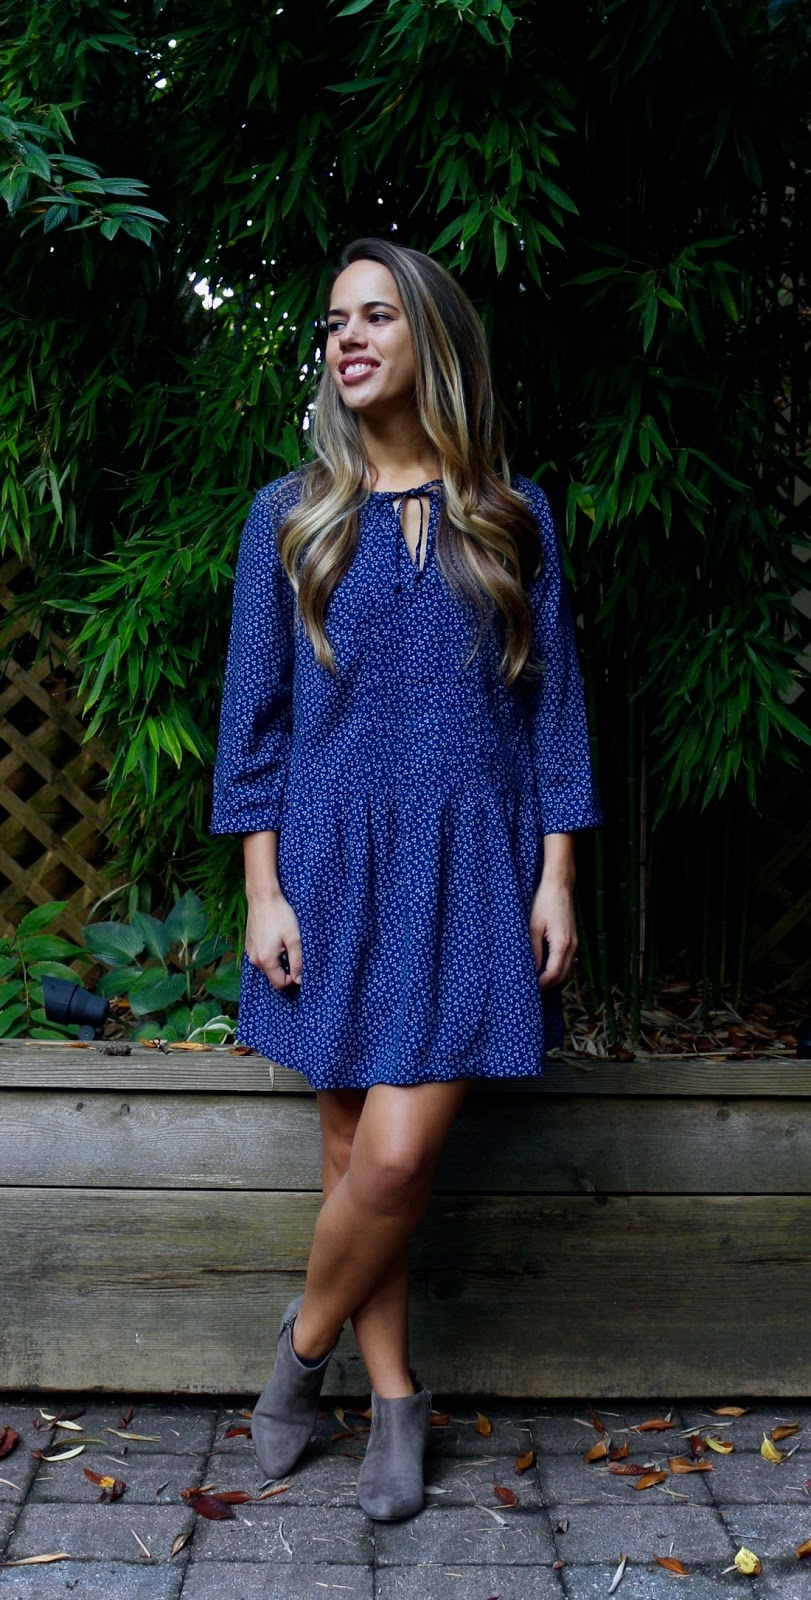 Jules in Flats - Dress with Ankle Boots (Business Casual Fall Workwear on a Budget)